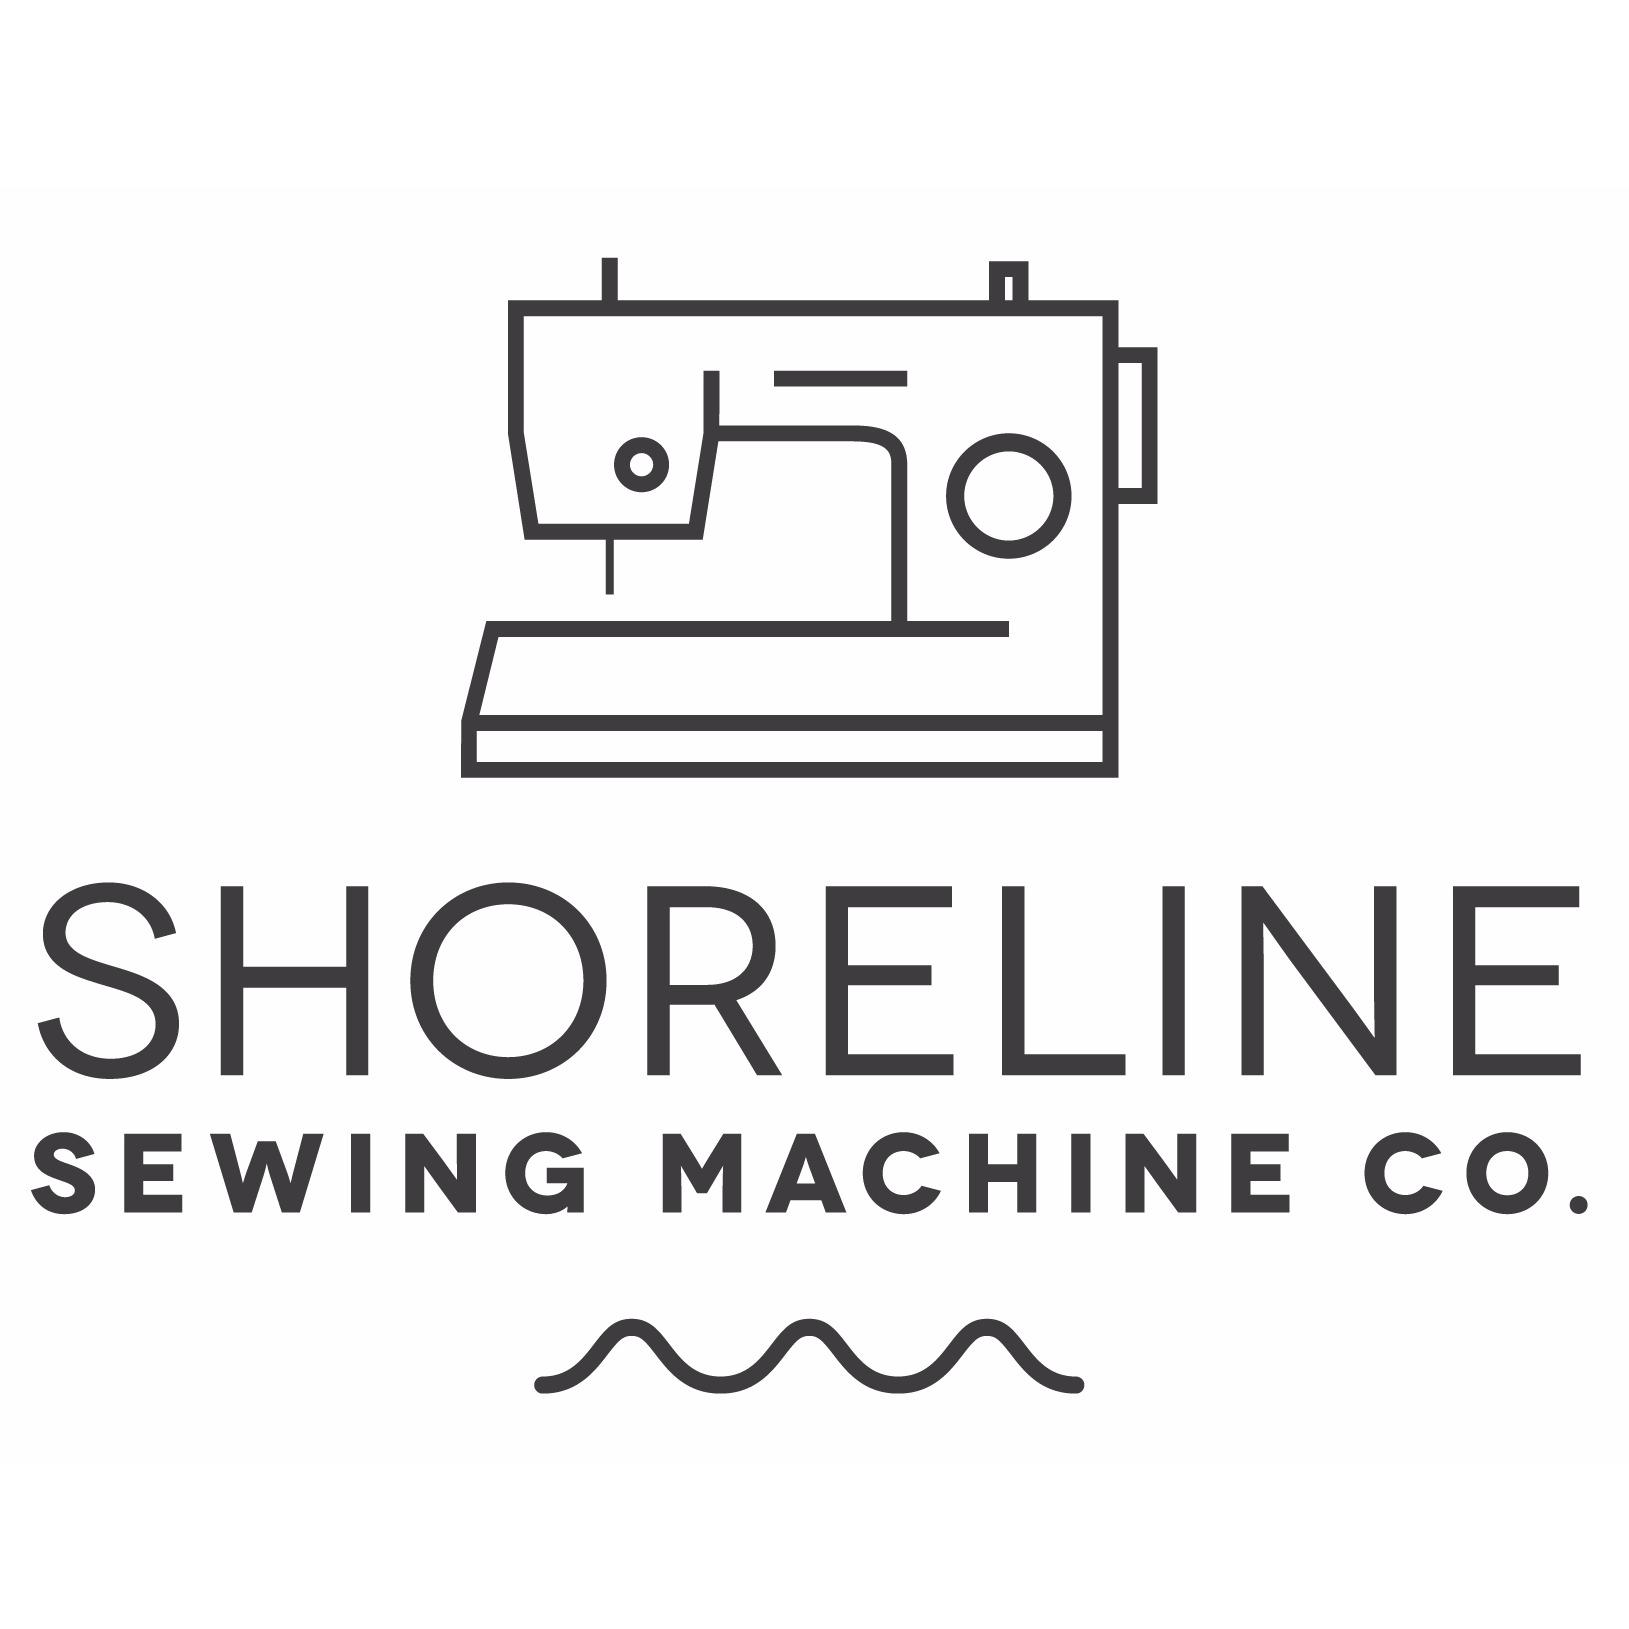 Shoreline Sewing Machine Co. image 2